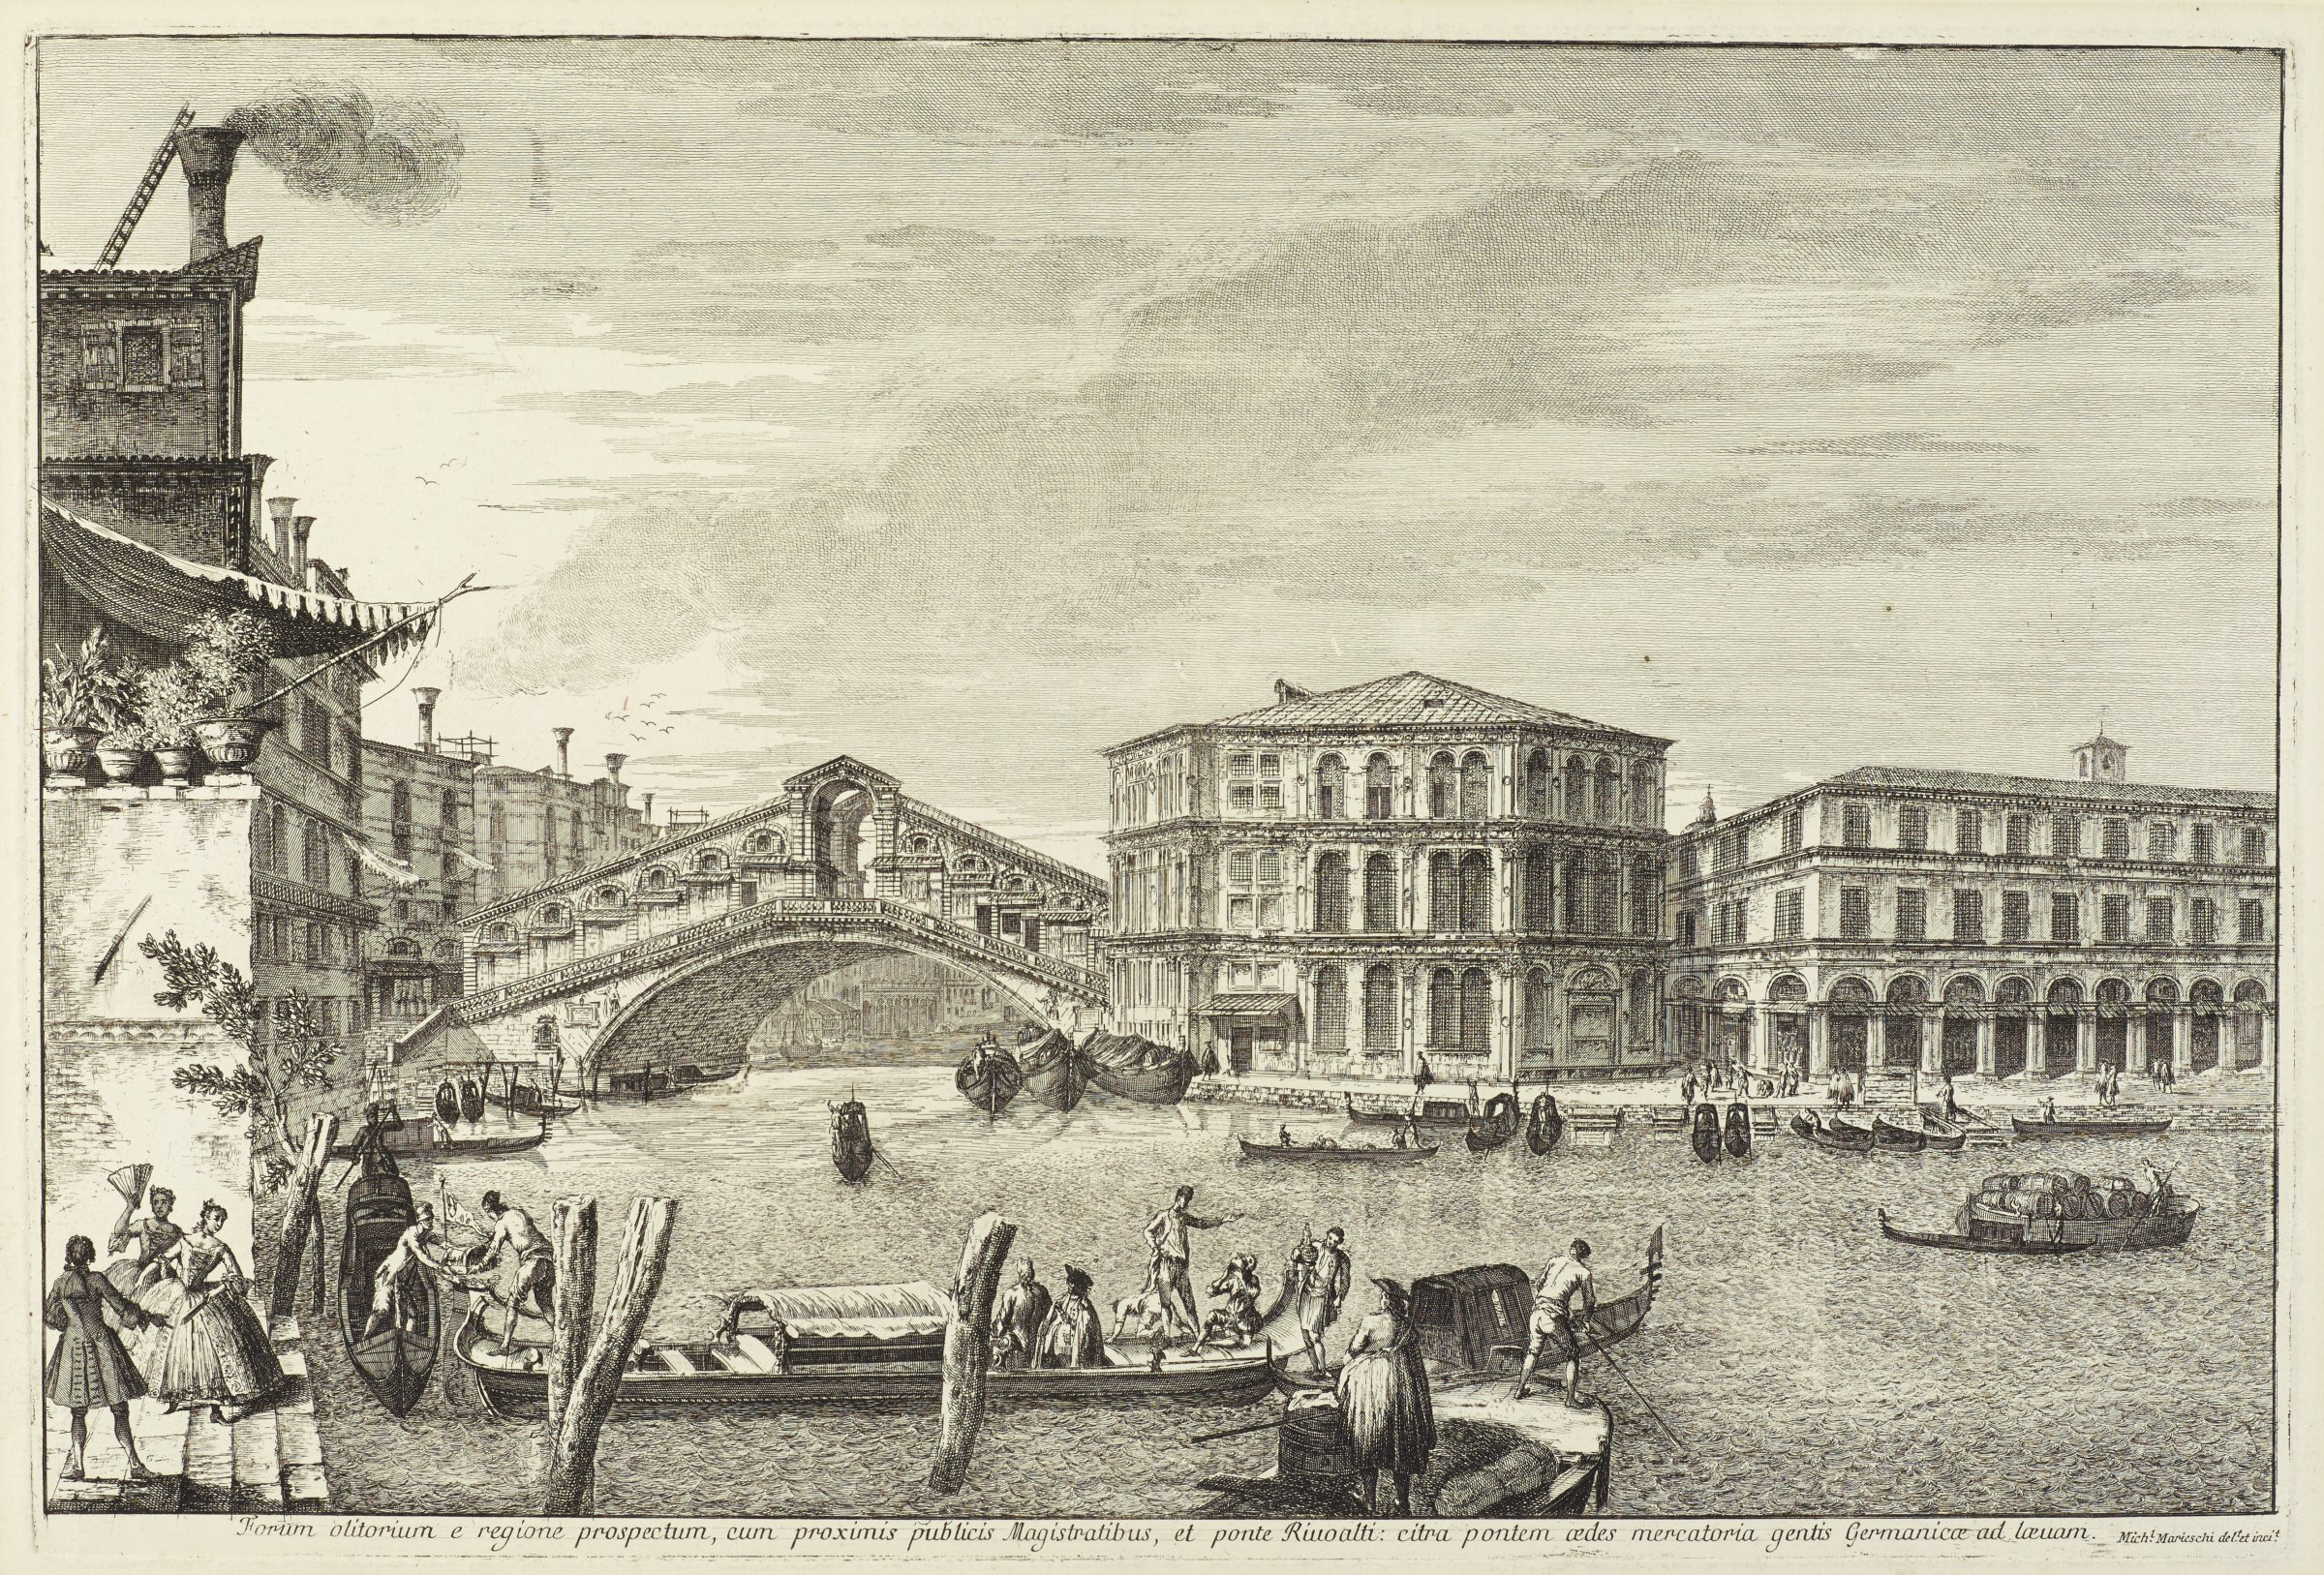 A scene of Venice with the Rialto Bridge and the Palazzo dei Camerlengthi featured in the background. Gondolas carrying people and goods populate the river. Elegantly dressed figures stand on the bank at the left.